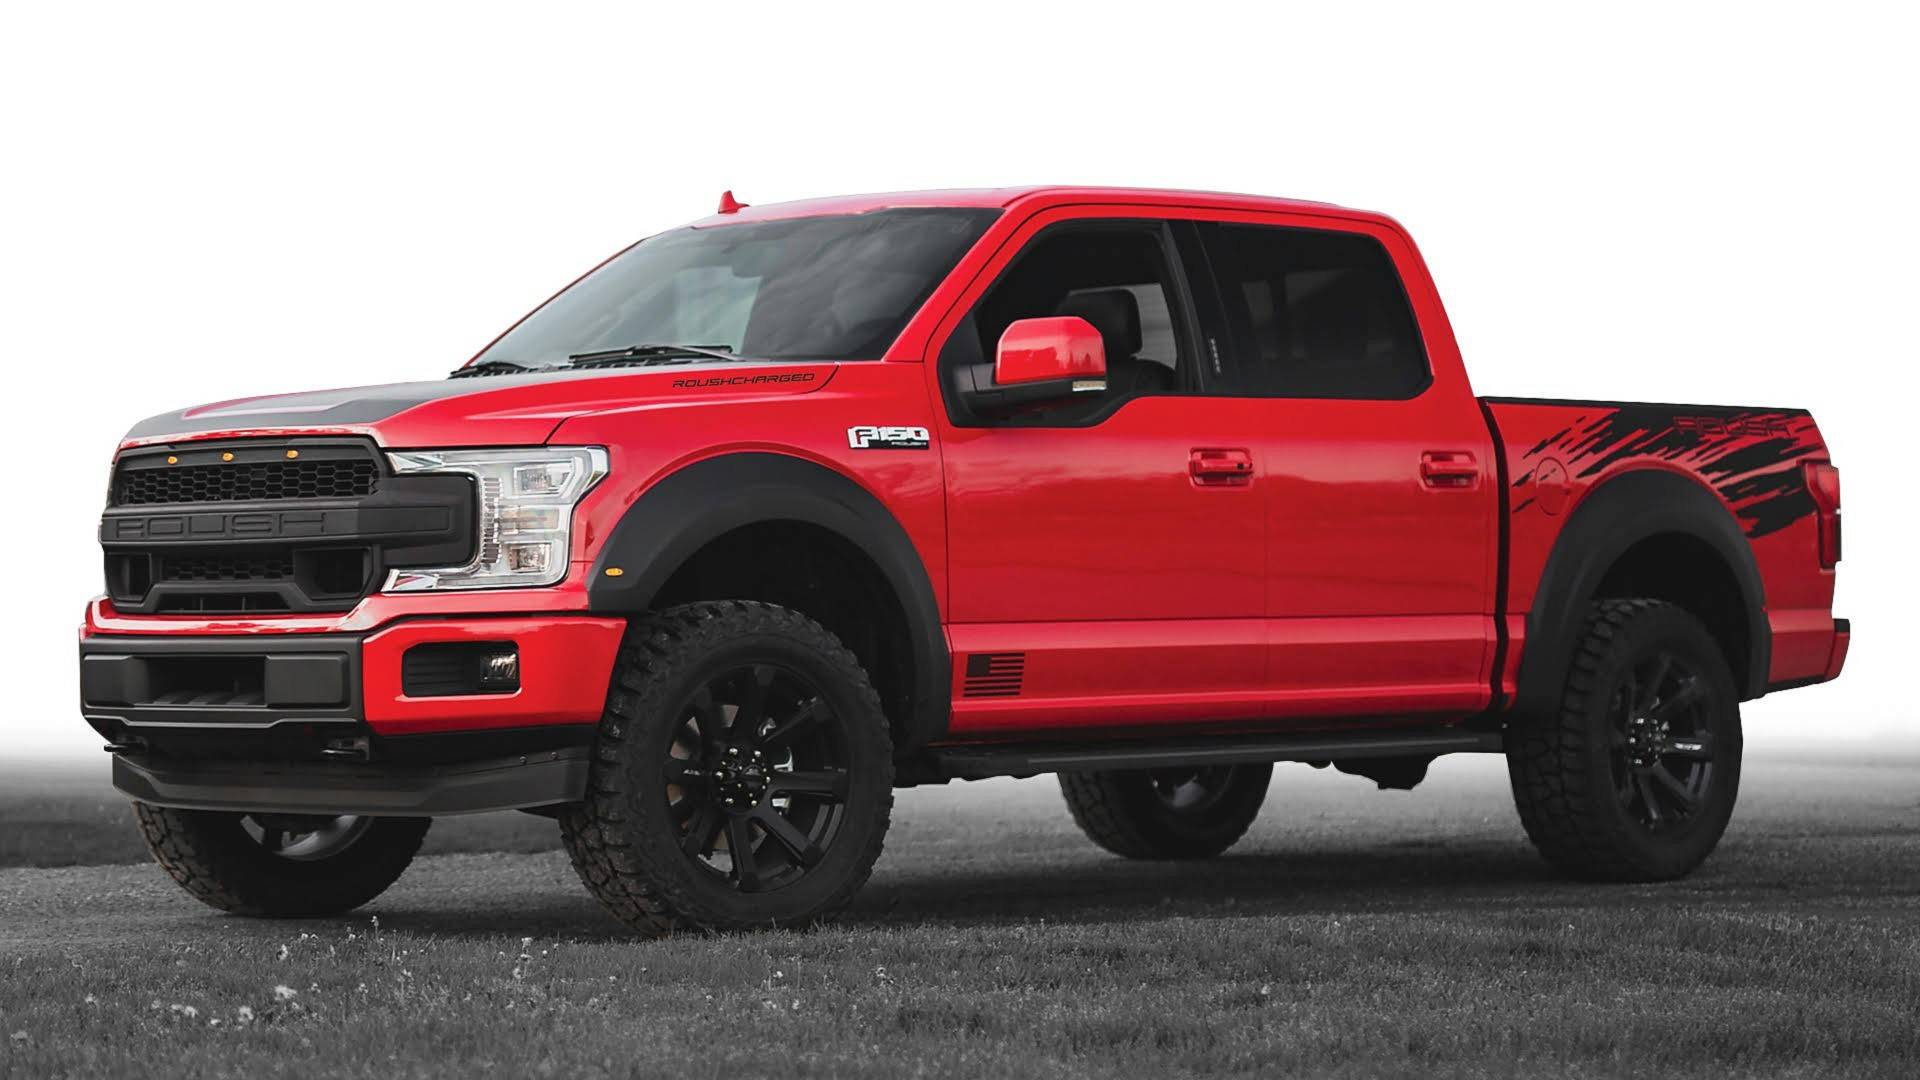 2018 Roush F-150 SC Debuts With 650 HP And Upgraded Suspension